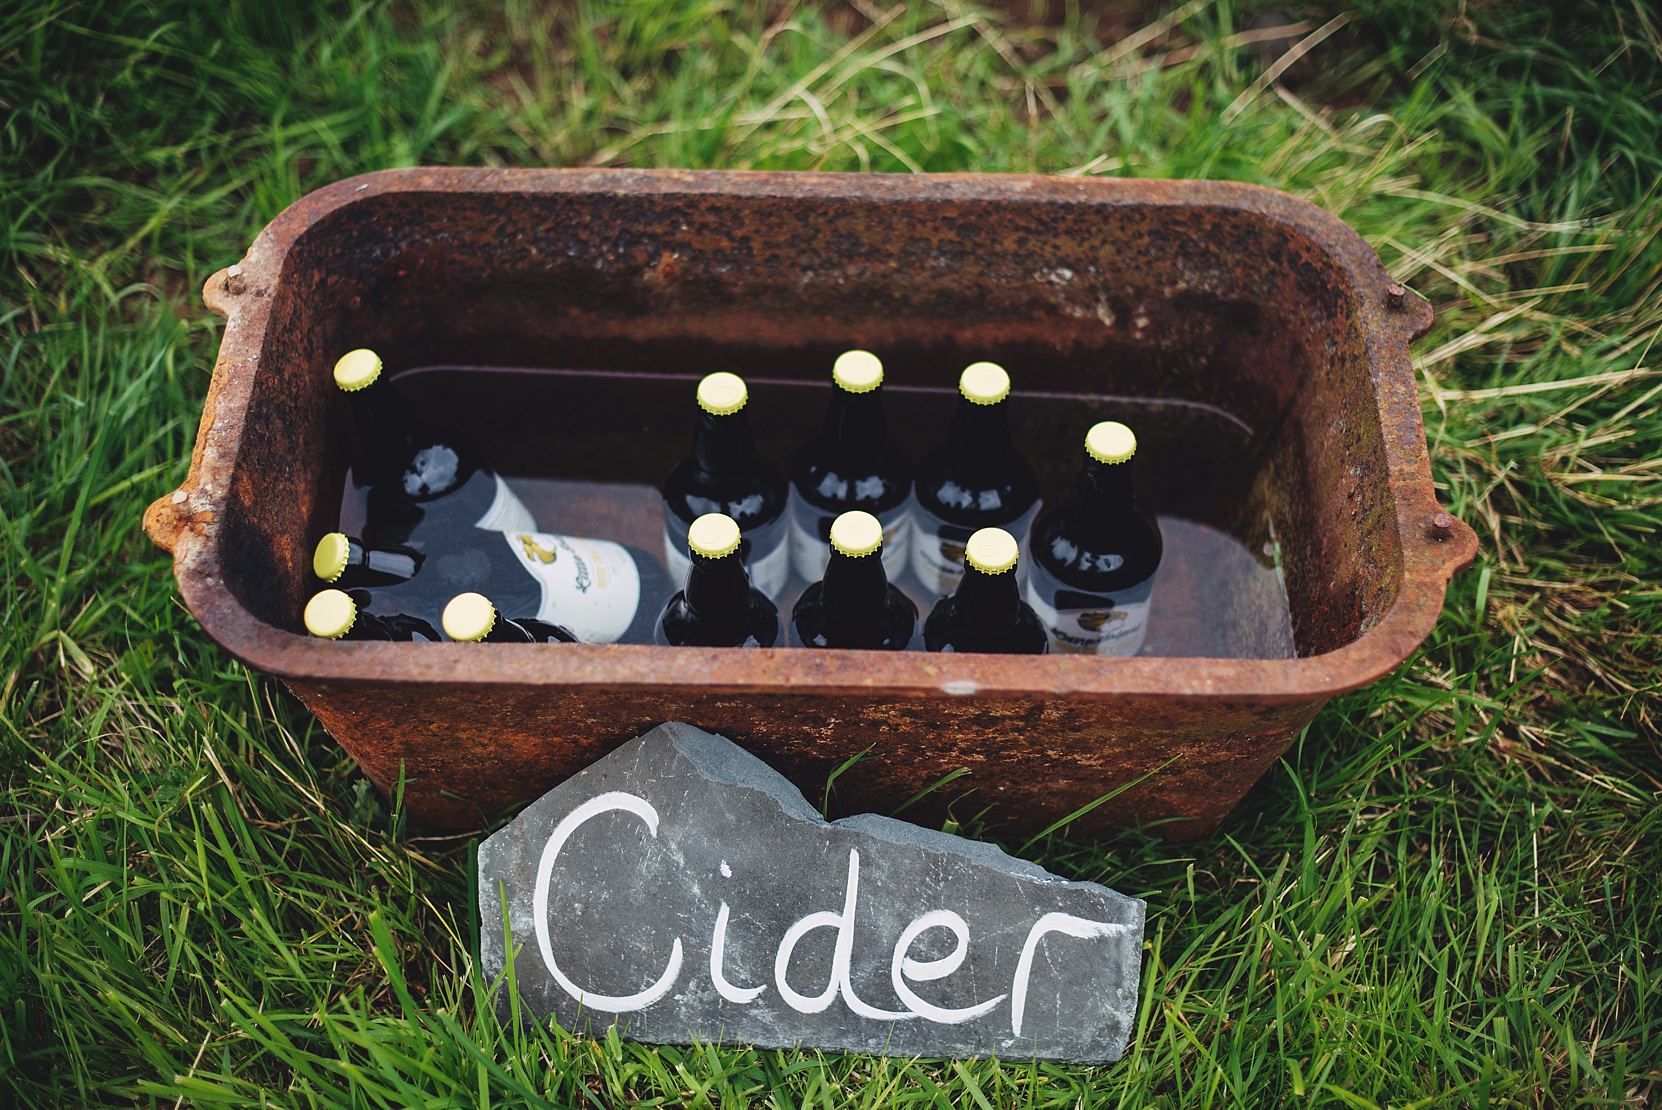 cider in a trough